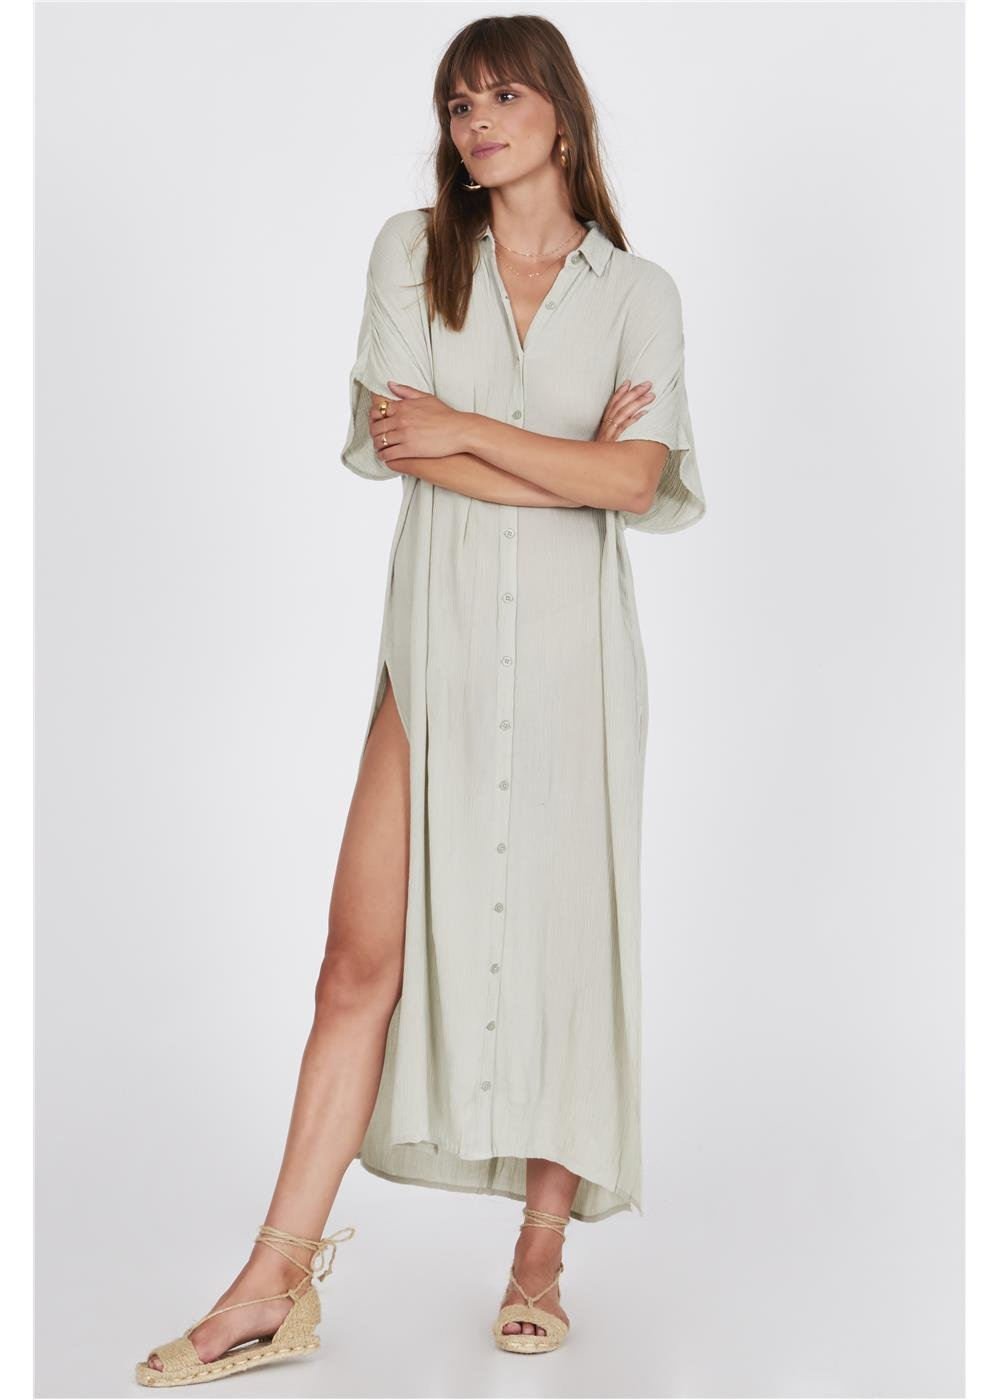 Amuse Society Tranquilo Woven Dress Palm Green